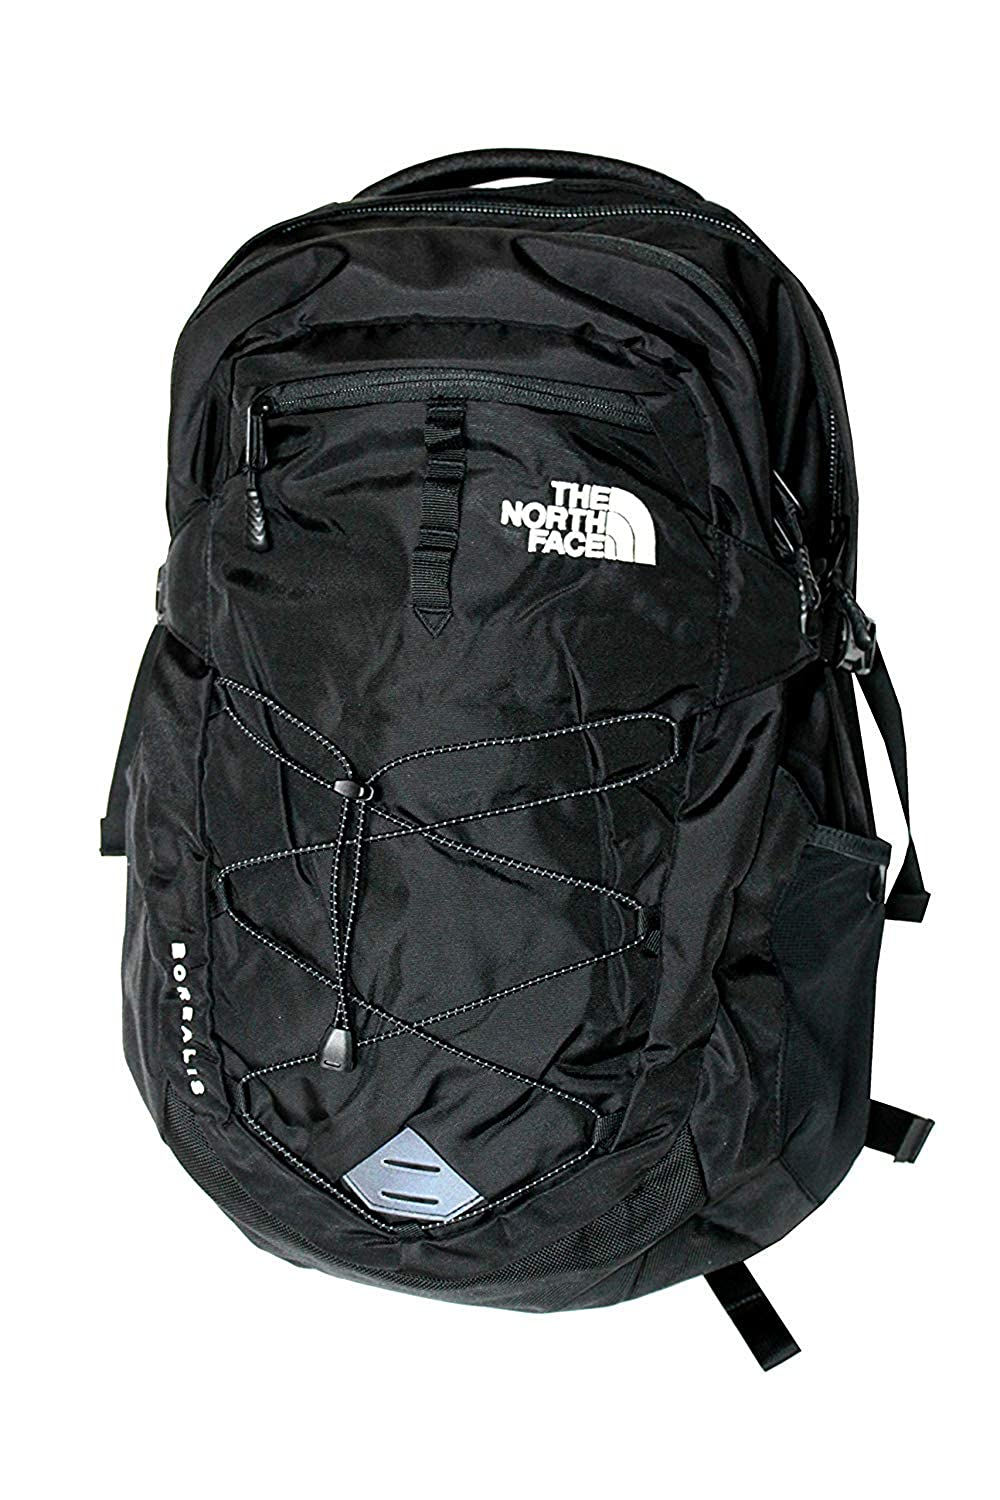 15437a121 The North Face Recon Backpack, TNF Black, One Size